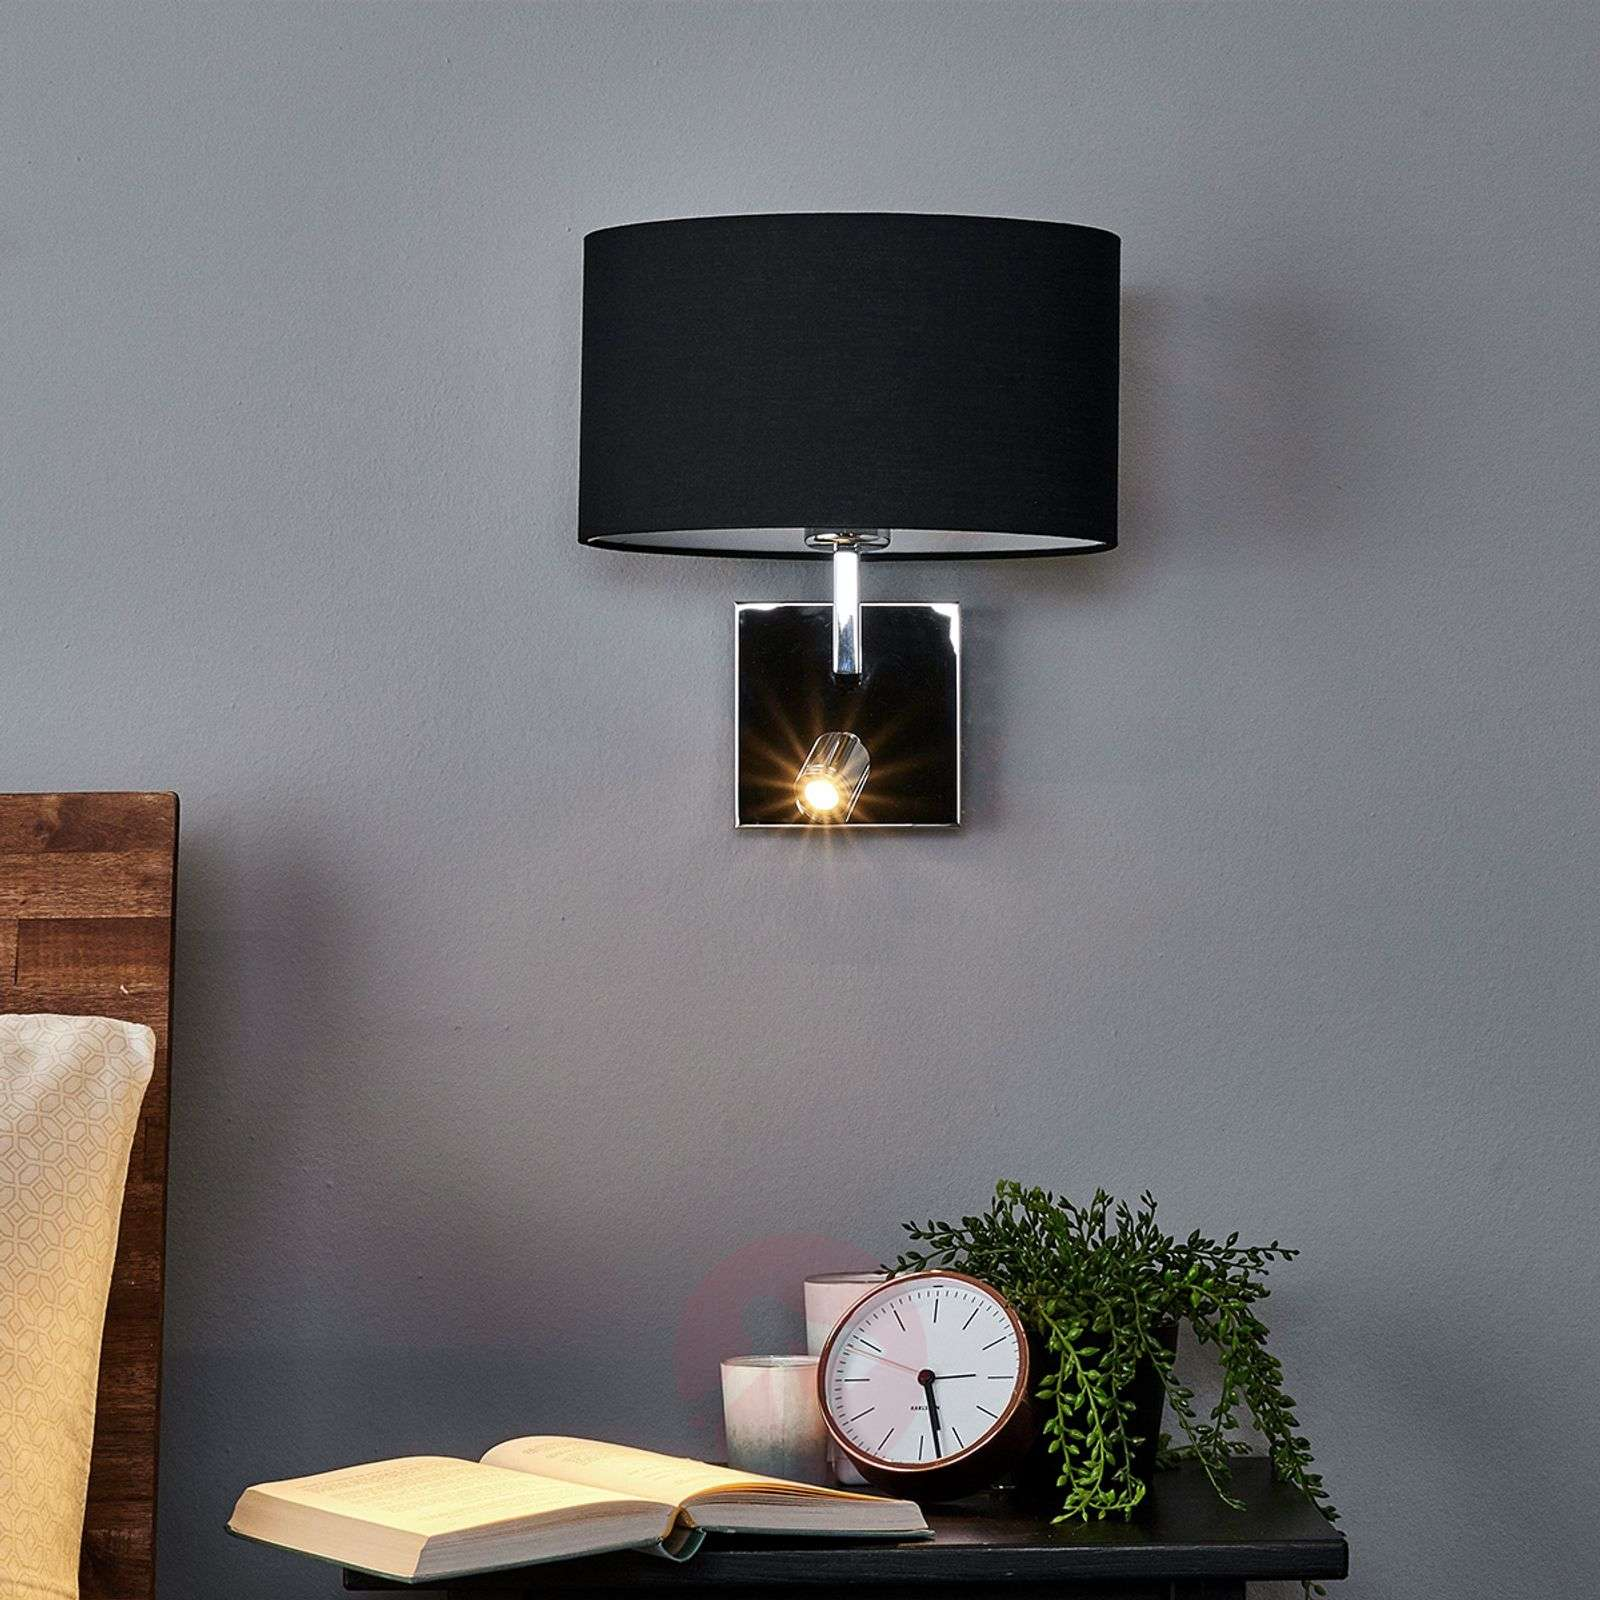 Black fabric wall lamp Karla with LED reading lamp-9976008-01